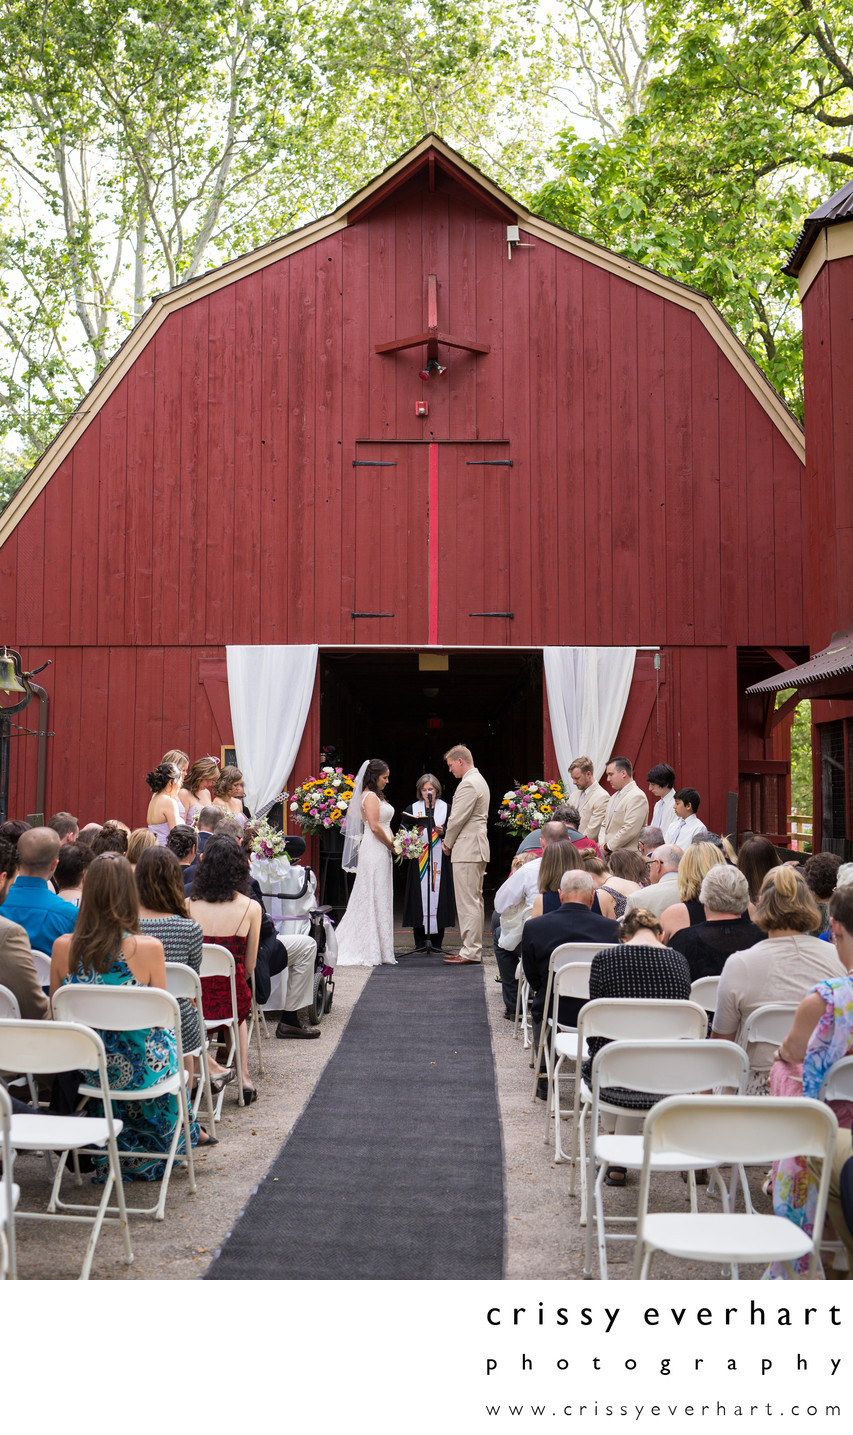 Elmwood Park Zoo Red Barn Wedding Ceremony